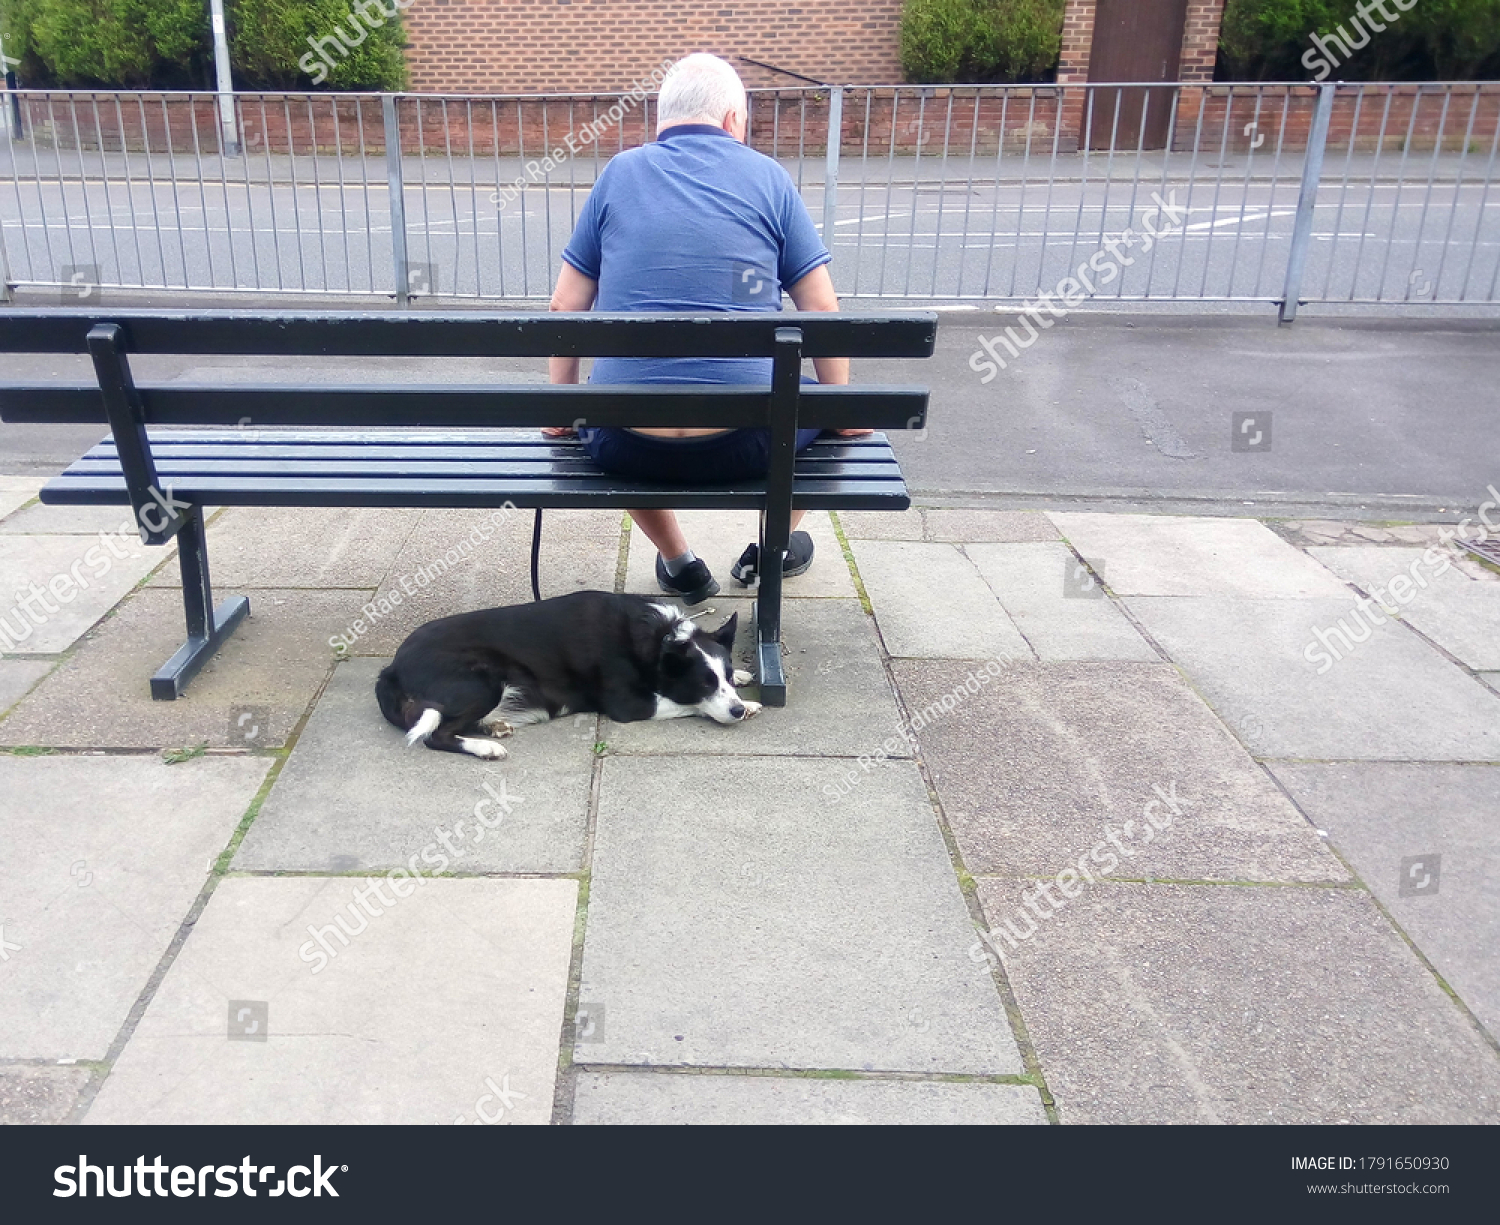 Mature man and his dog sat isolated on a bench as corona virus hits the elderly the hardest with copy space